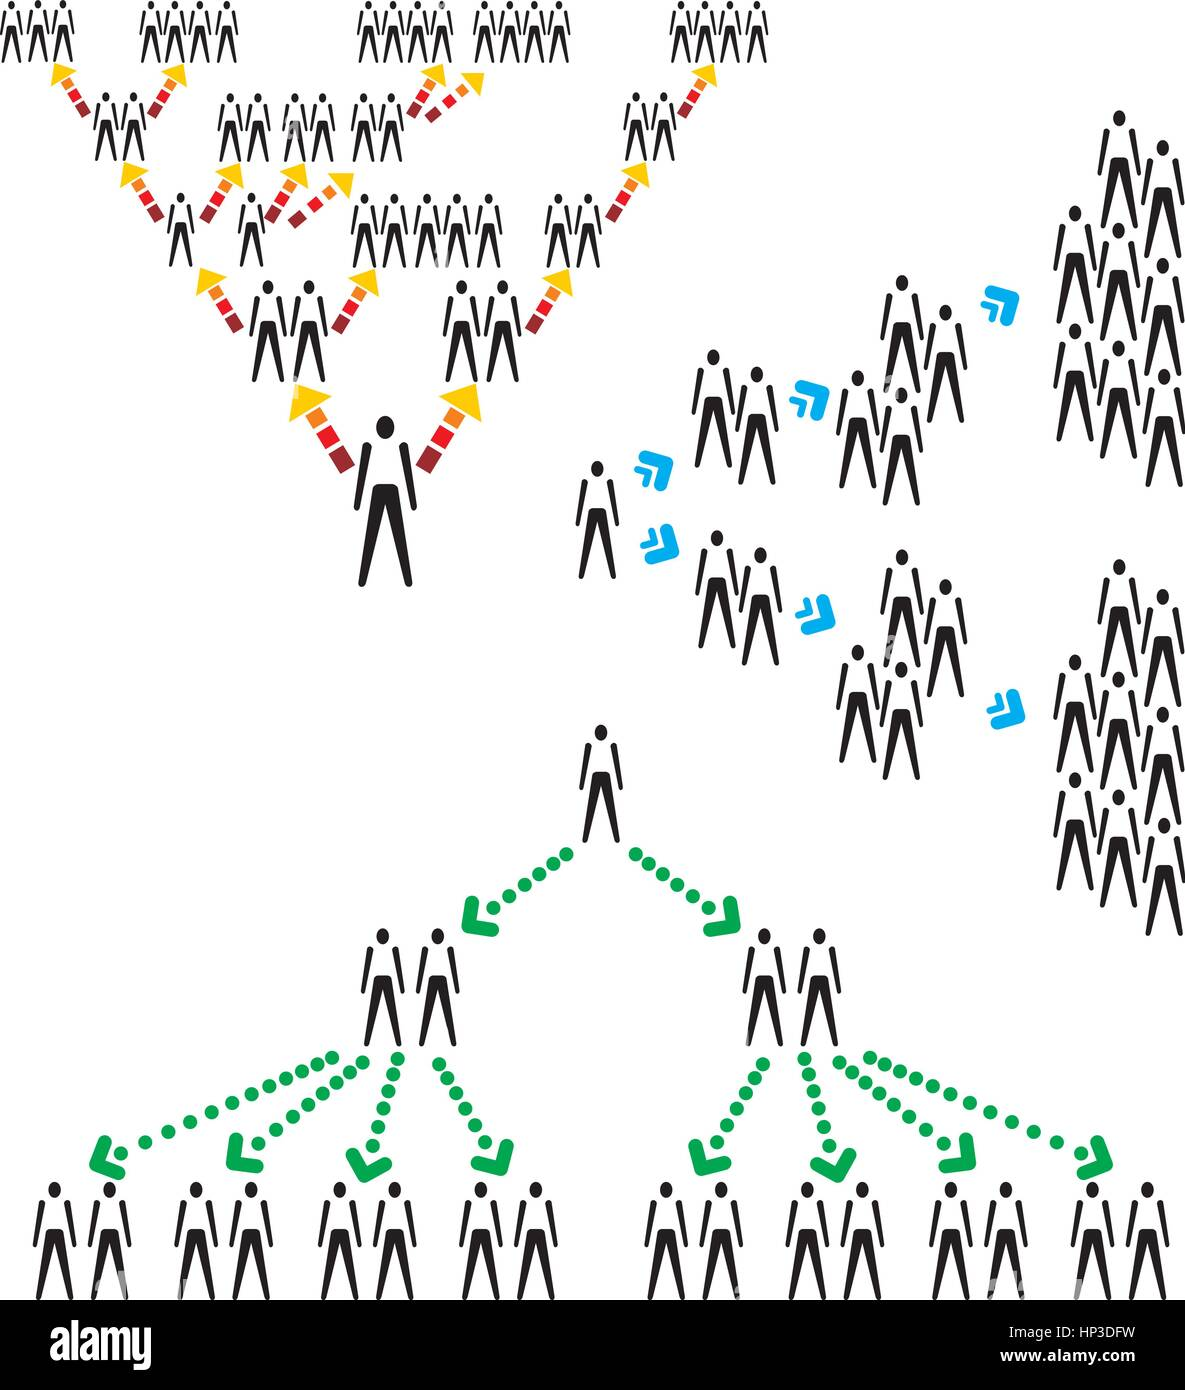 Network Human Structure - Stock Vector